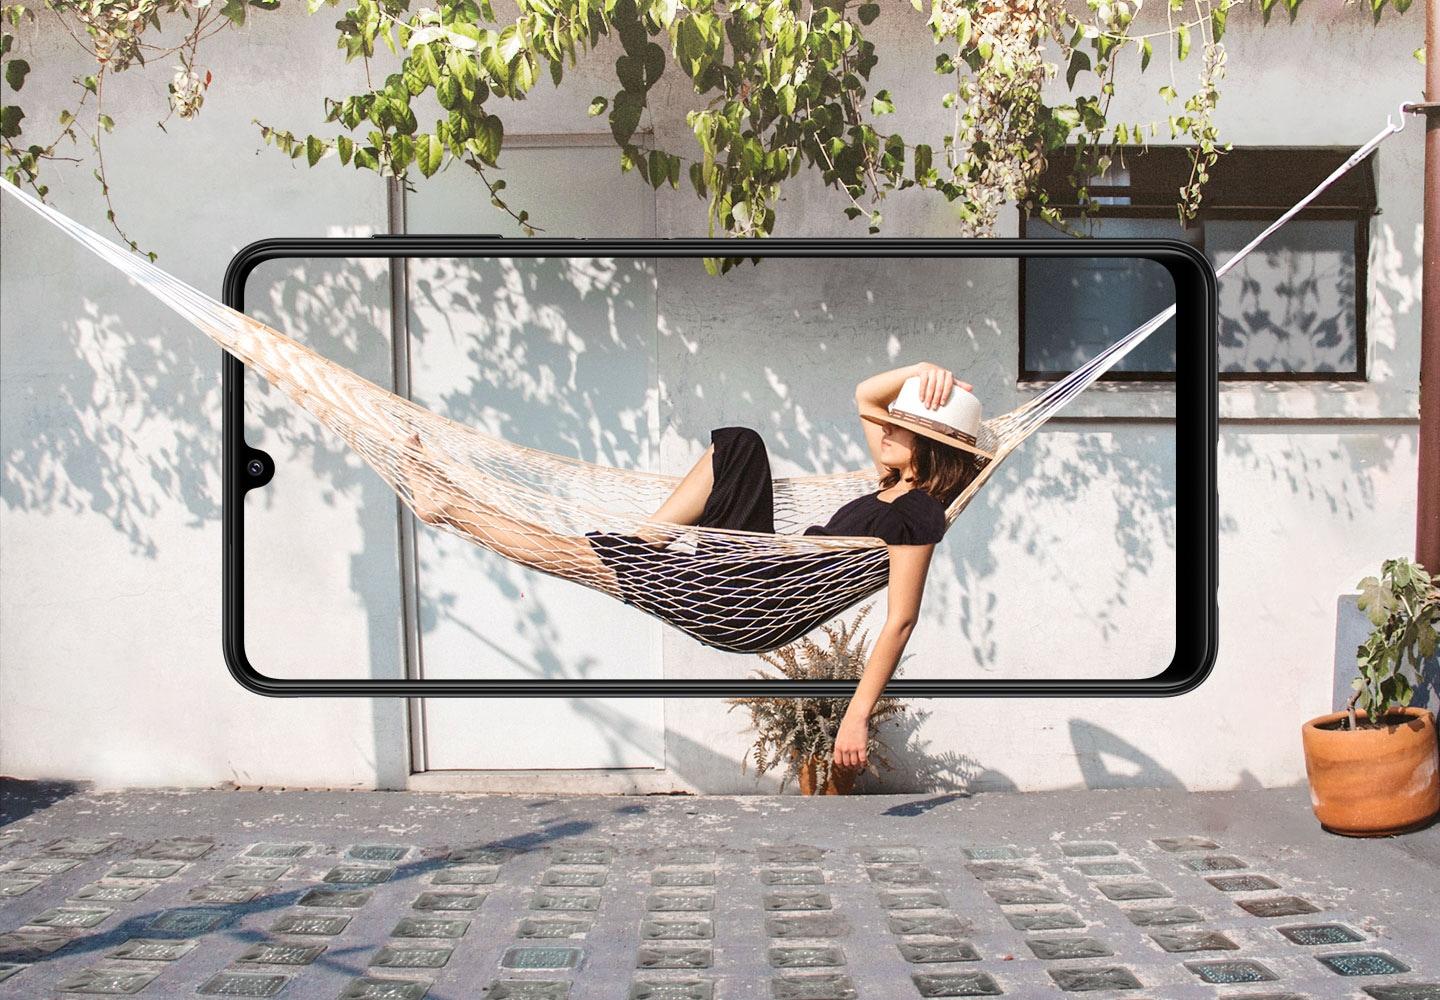 A Galaxy A22 is seen from the front, horizontally. Onscreen, a woman rests in a hammock, which blends beyond the bezel with the side of a house.